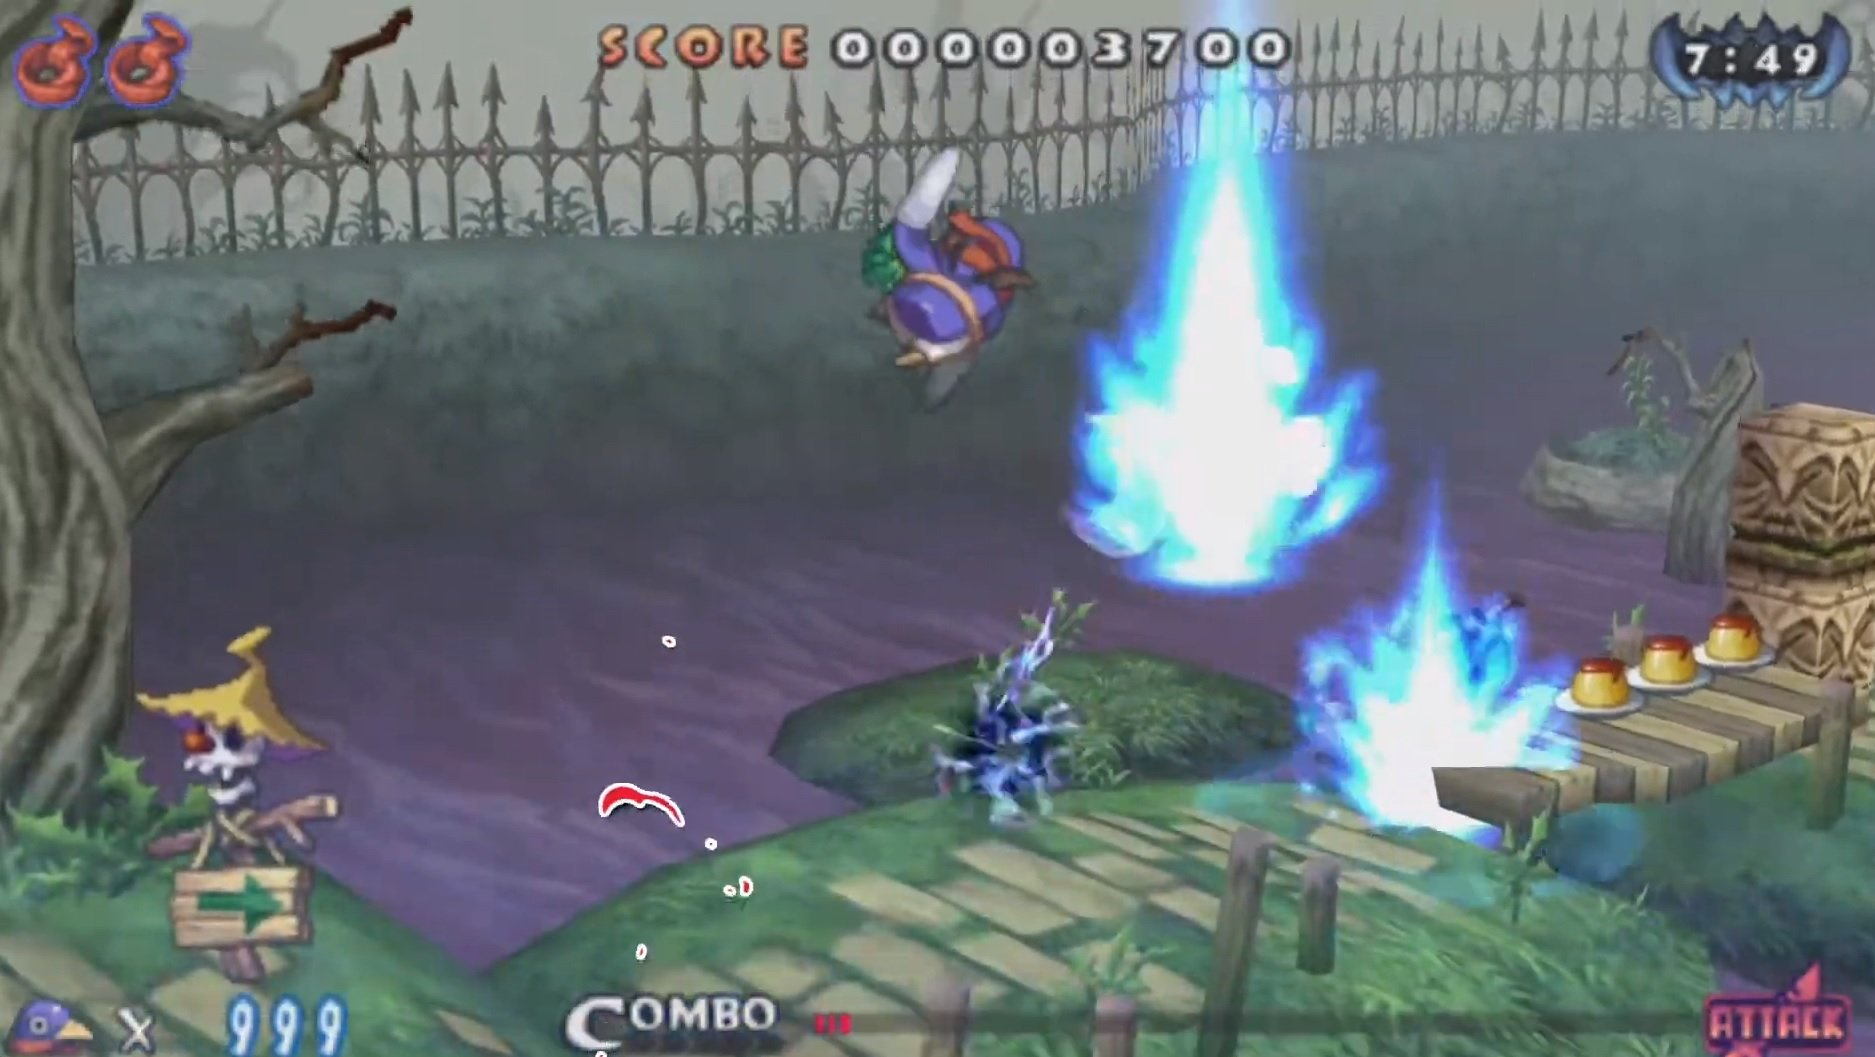 If you haven't played either Prinny game yet, here's a good idea of what the series is about screenshot